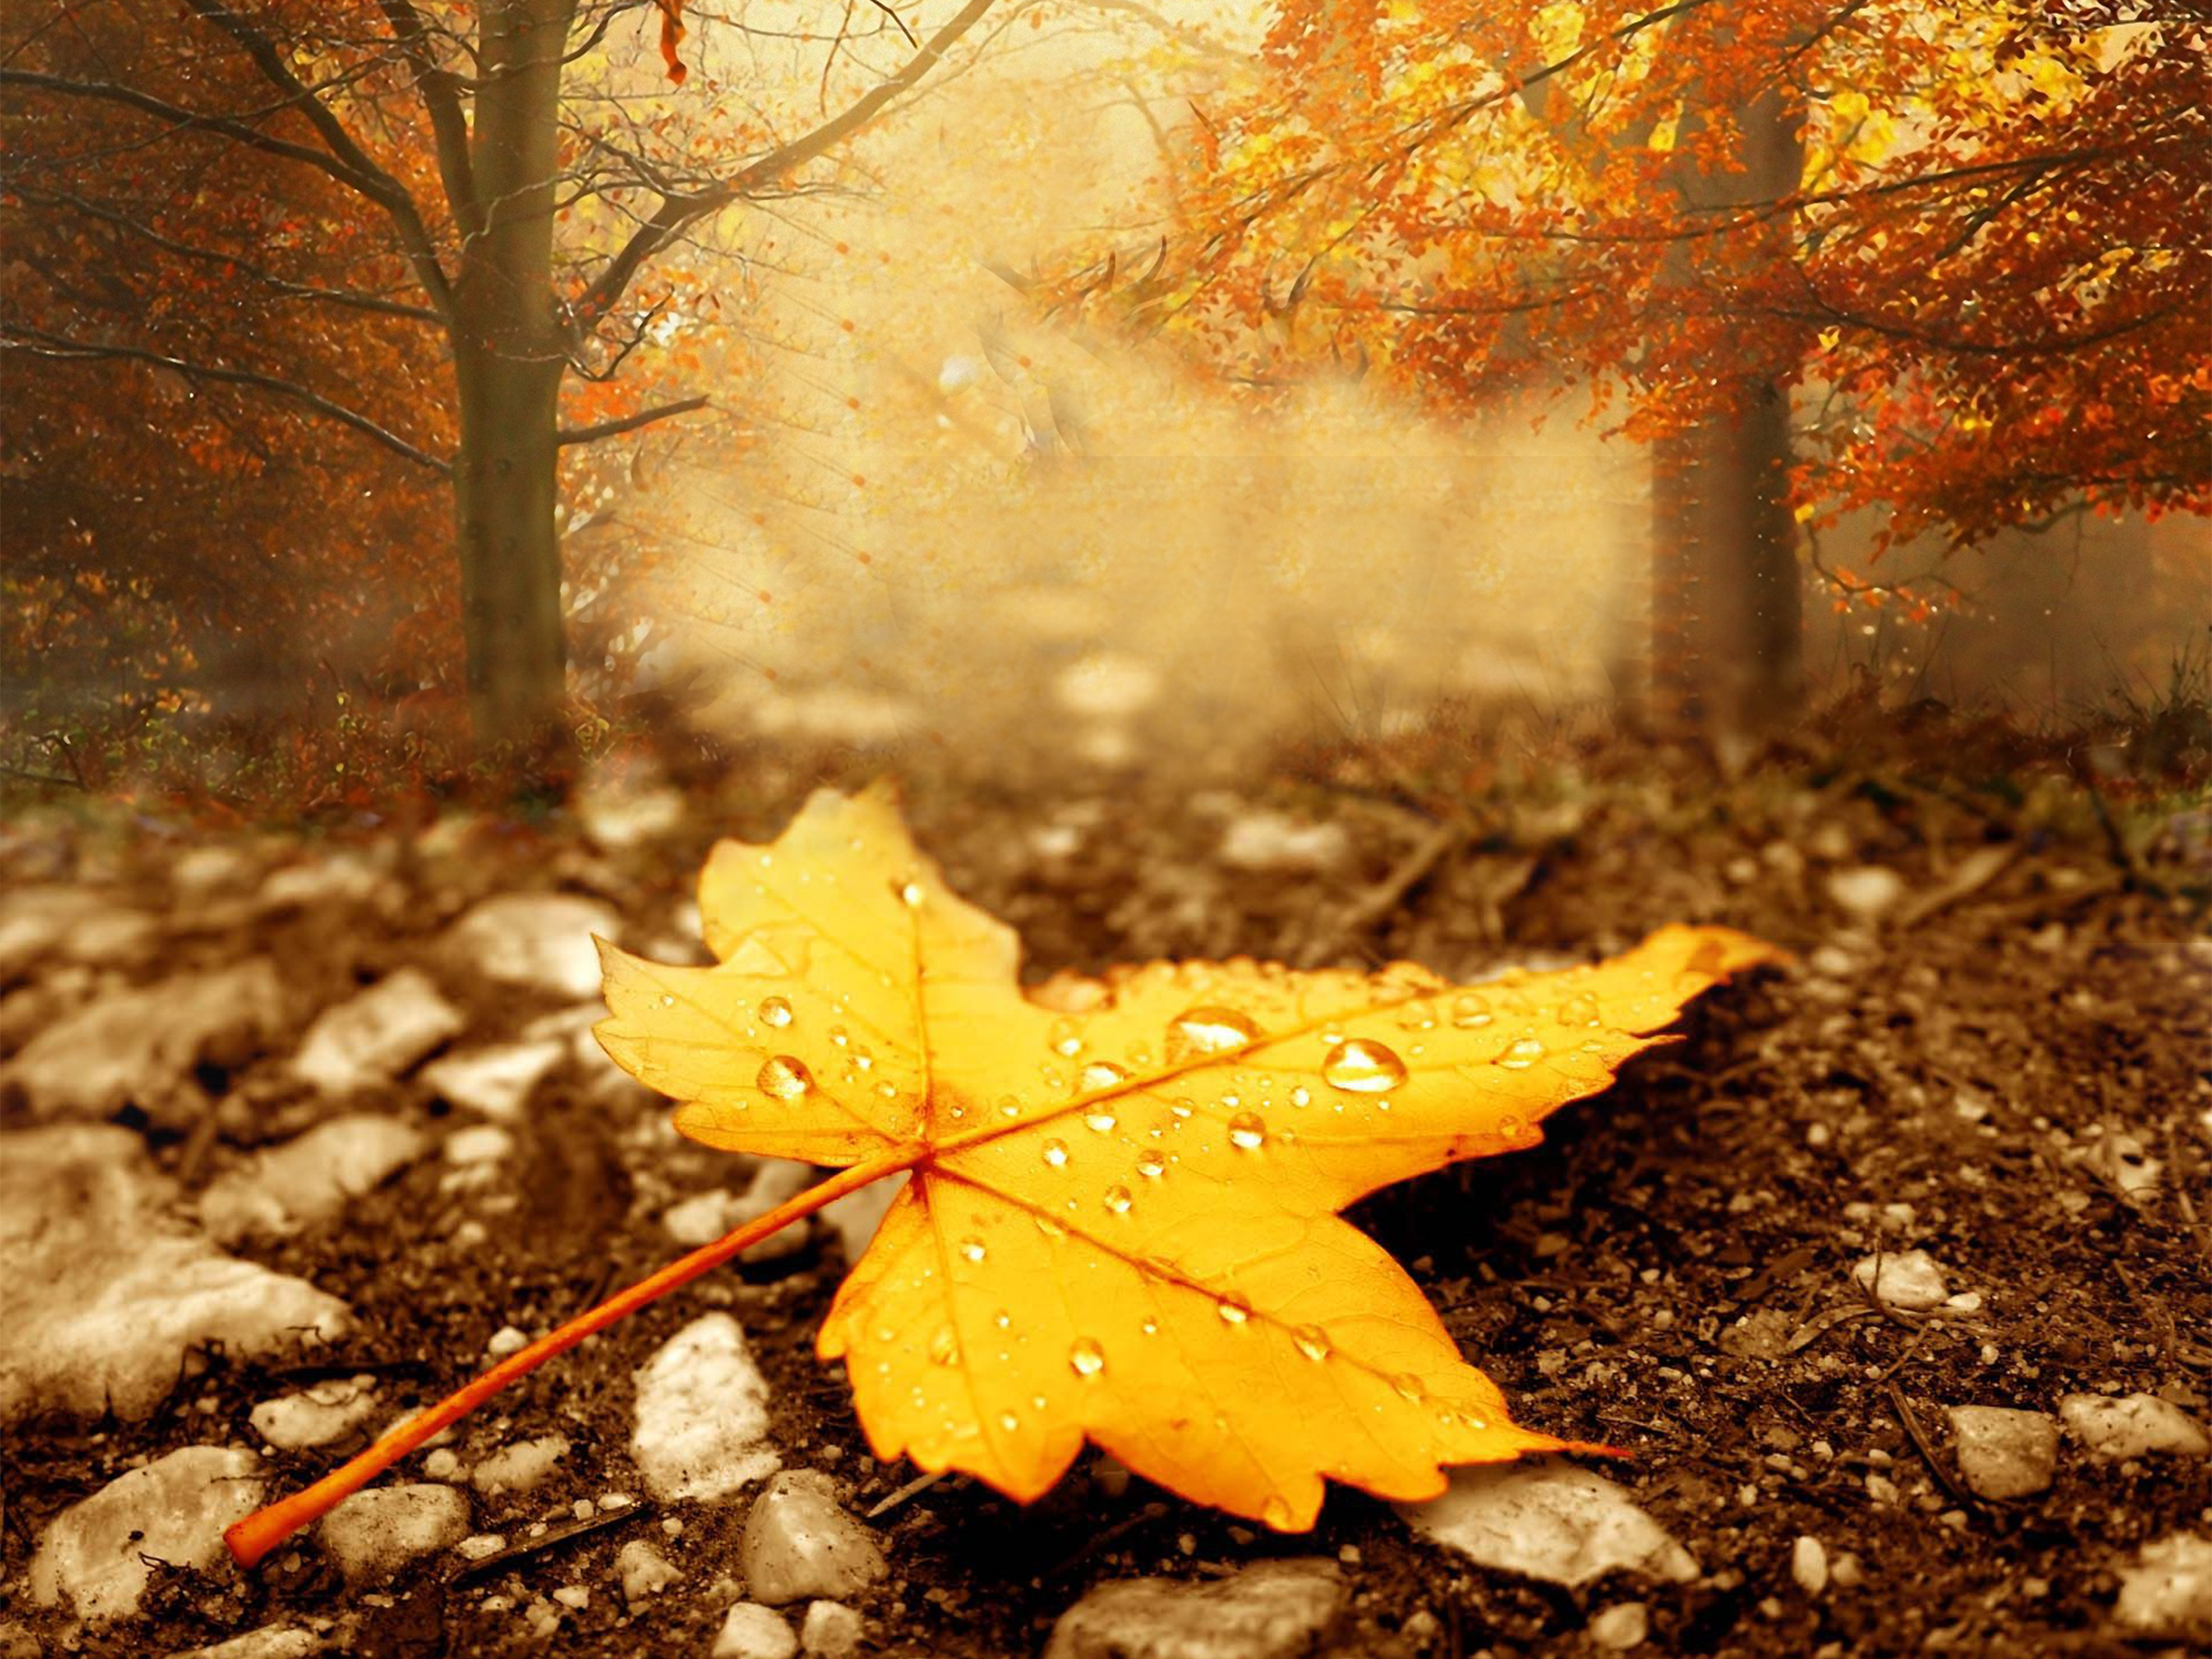 Leaf Autumn Hq Wallpaper V372q Hd Wallpaper Colores De Otono Arte Otono